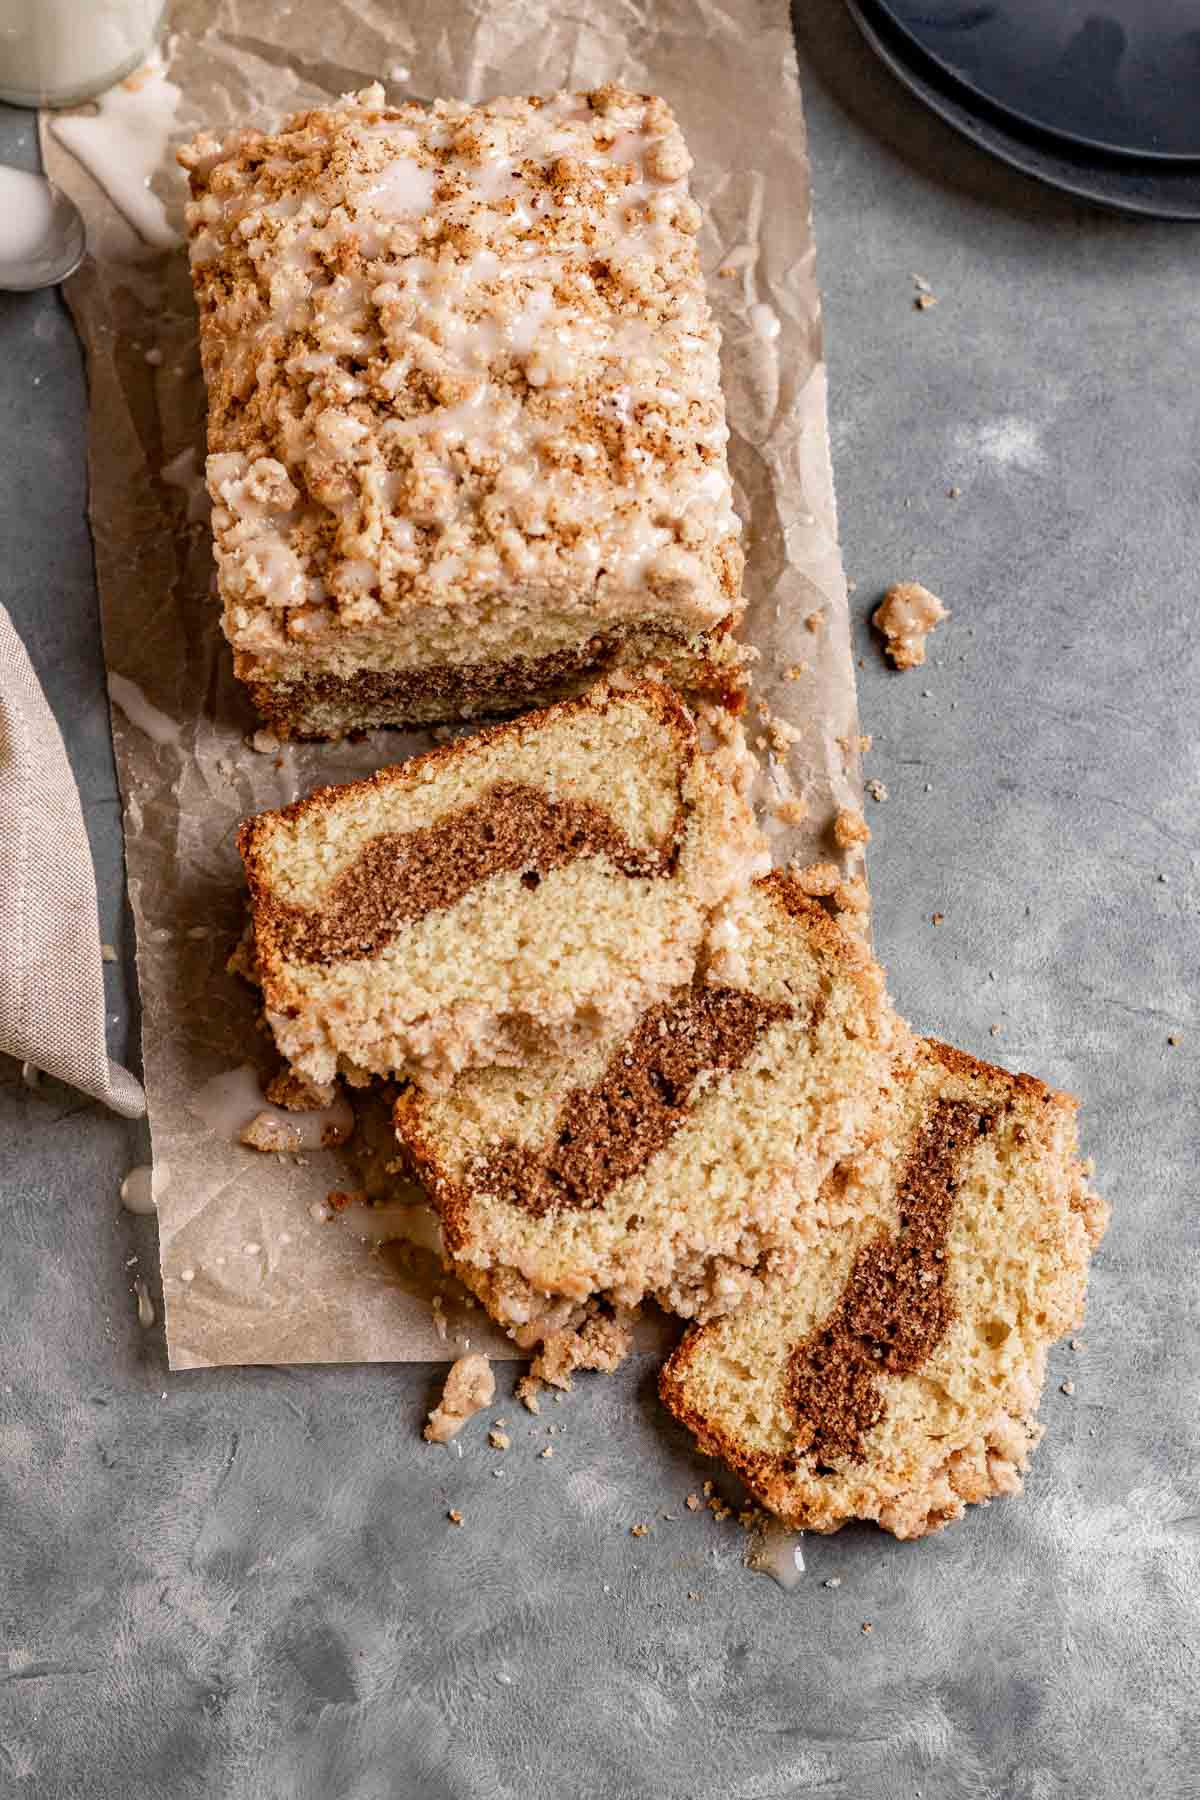 New York Crumb Loaf Cake sliced on parchment